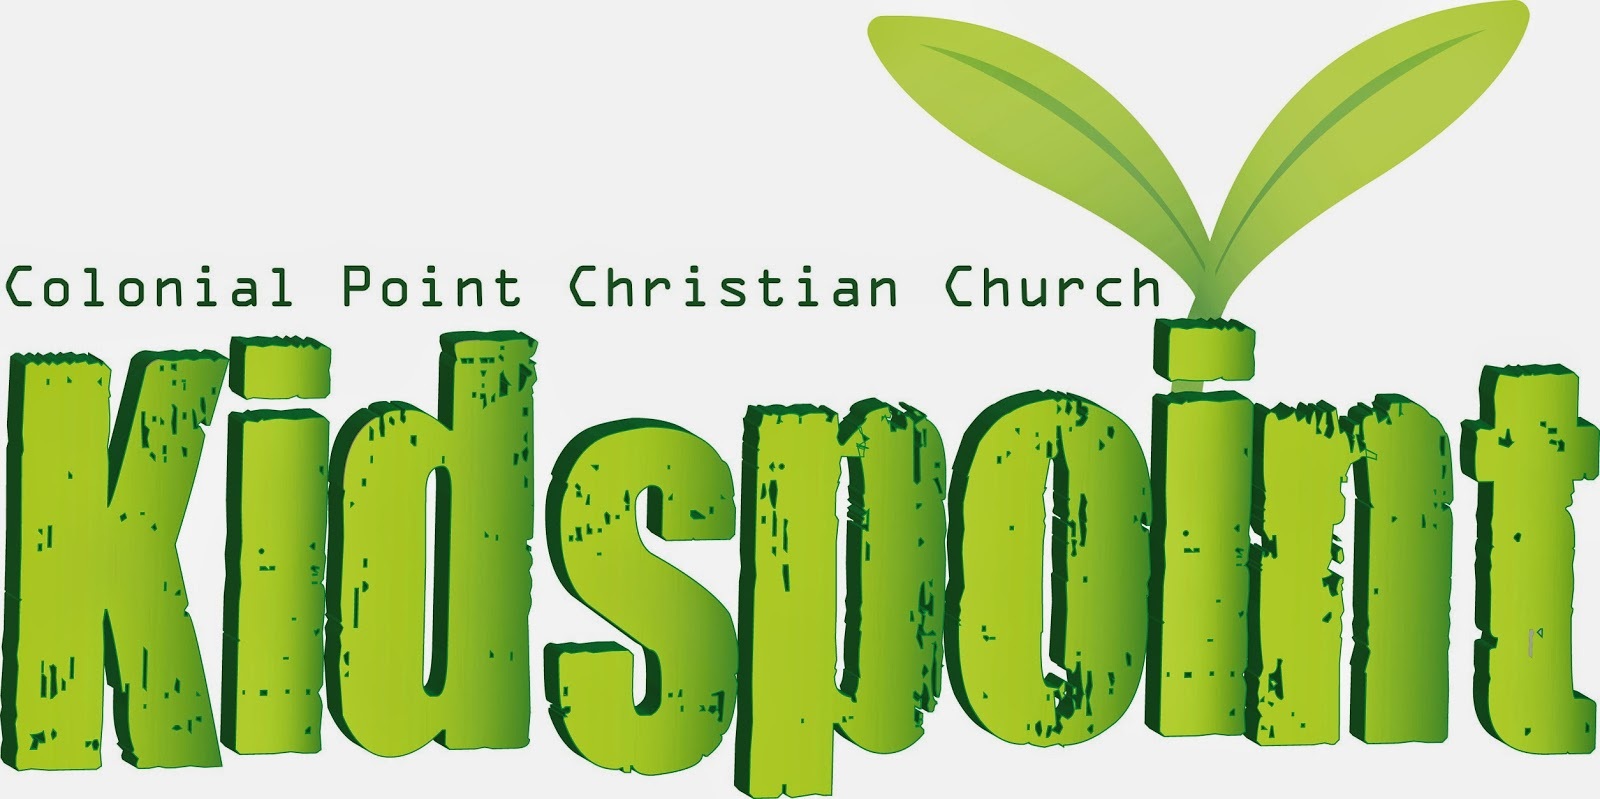 Vinyl Banner Printed for Colonial Point Christian Church | Banners.com